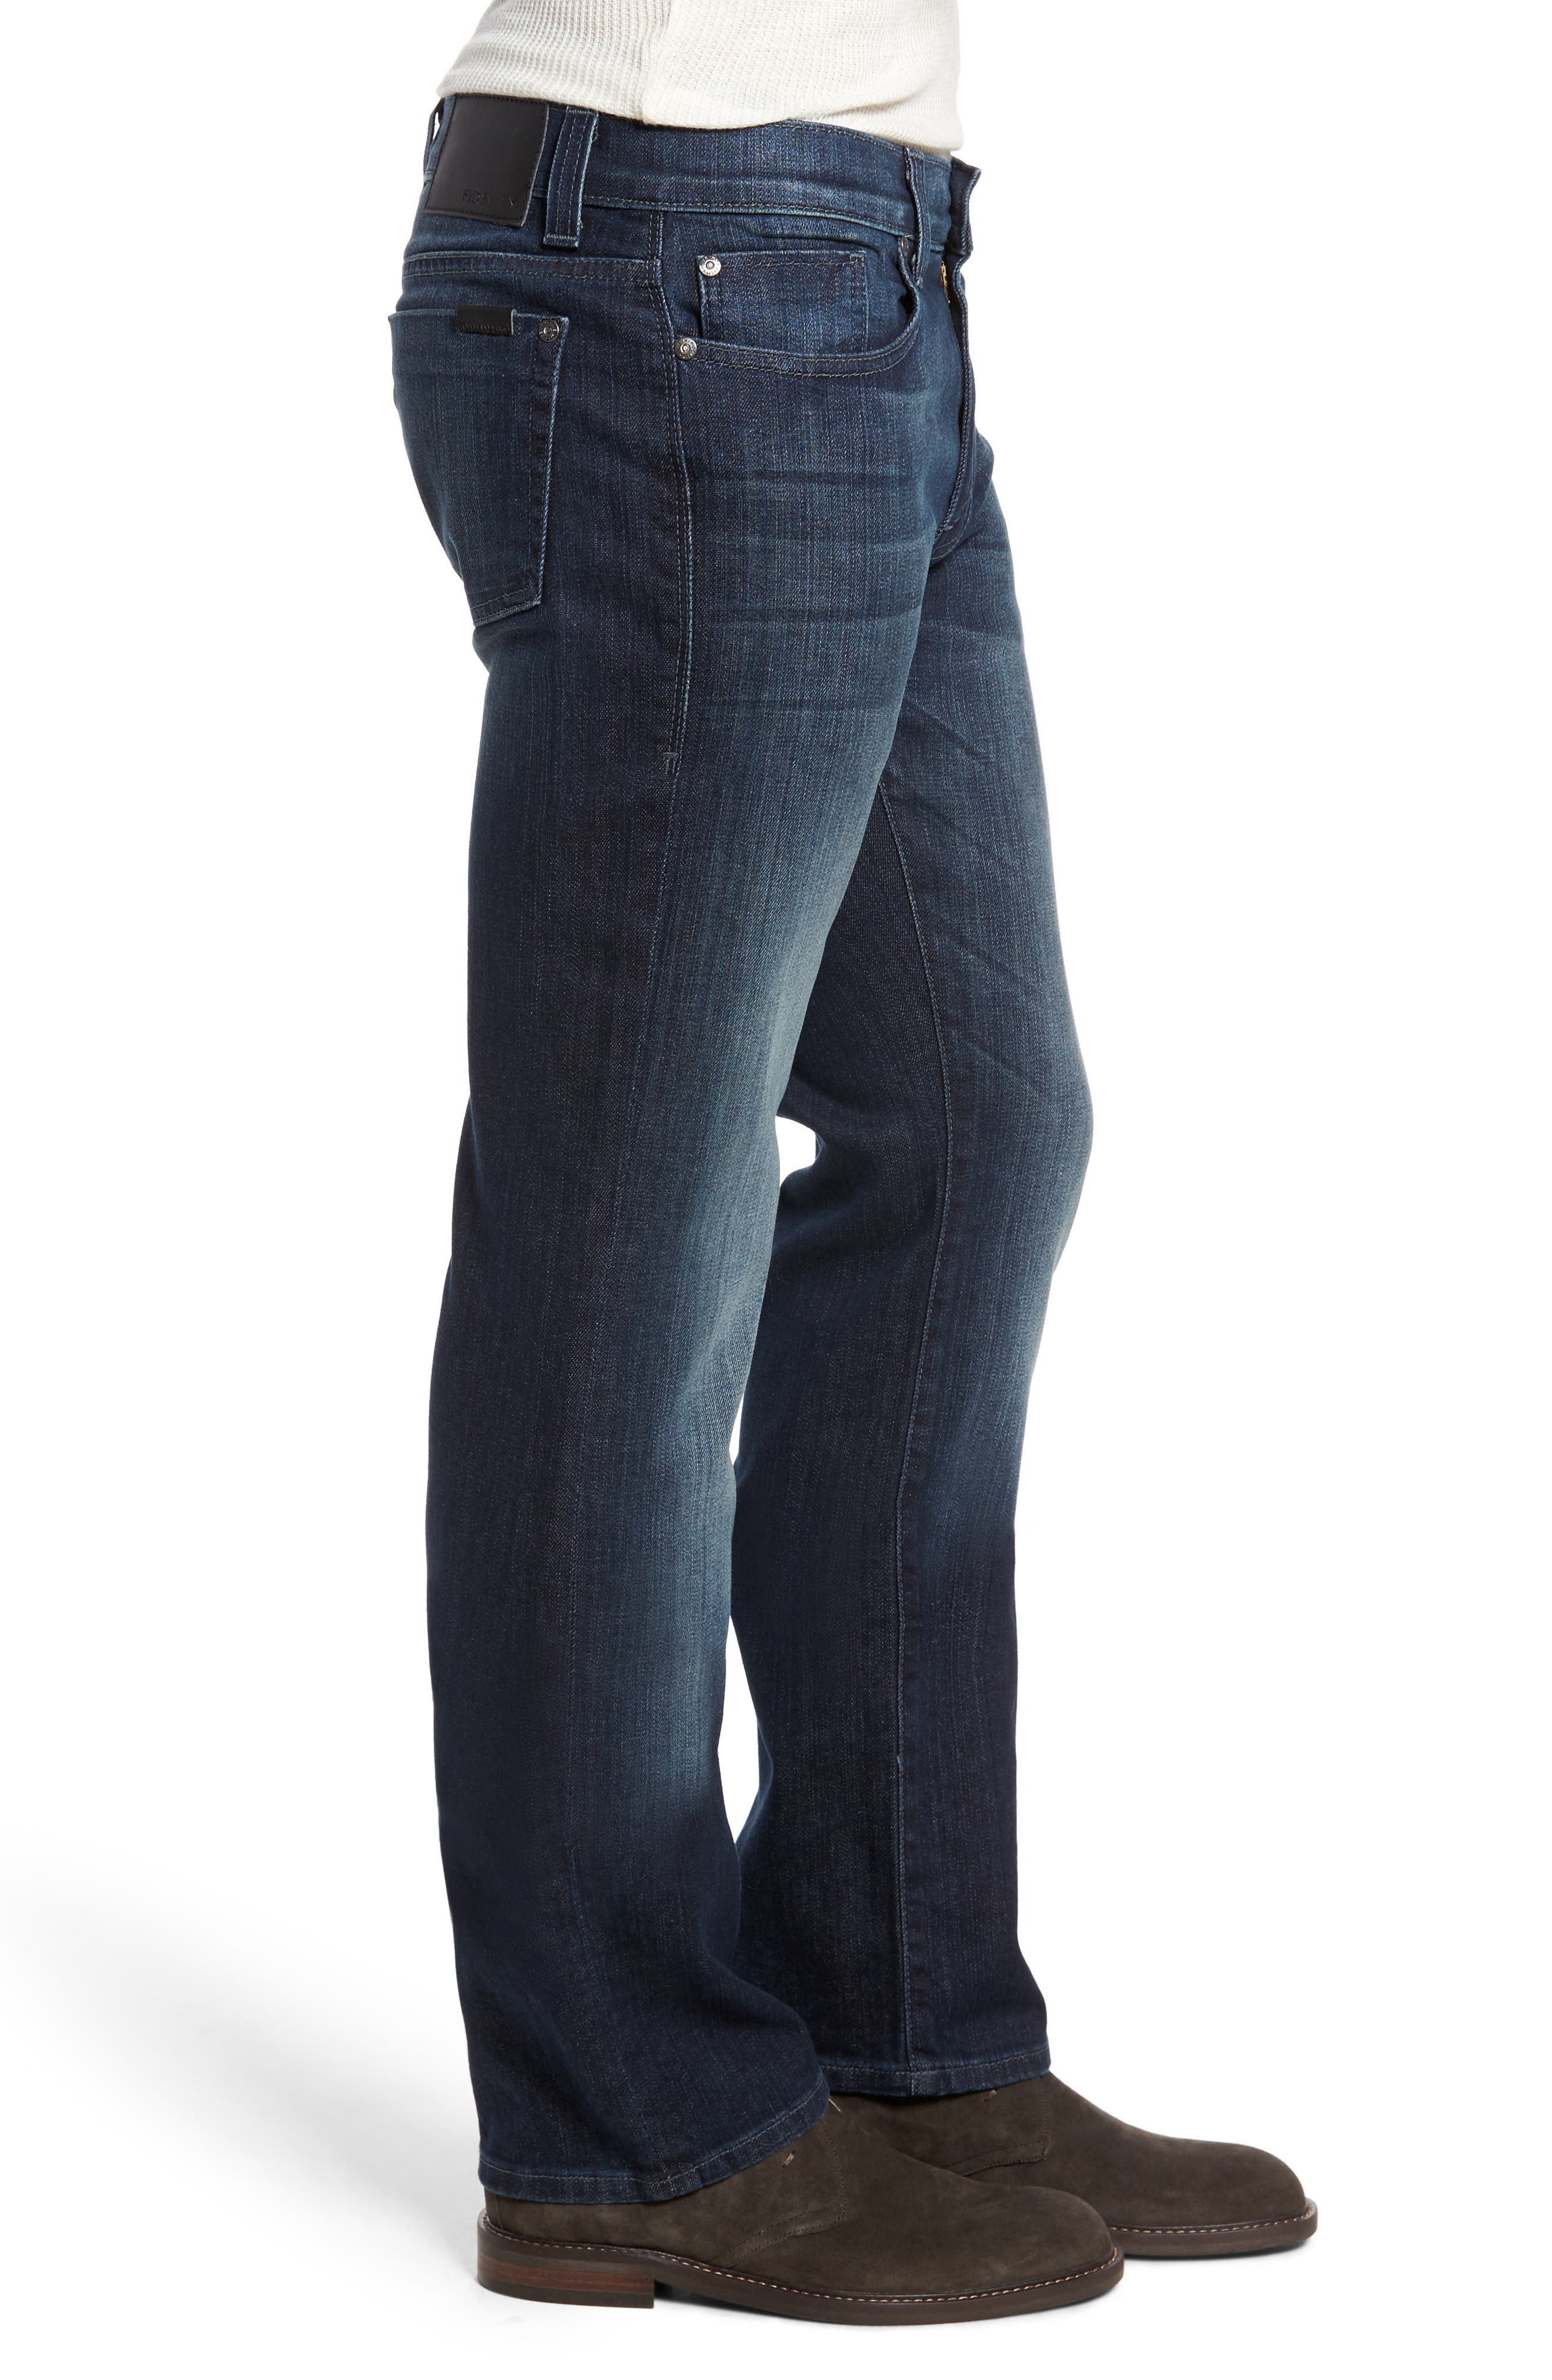 50-11 Relaxed Fit Jeans,                             Alternate thumbnail 3, color,                             Militia Blue